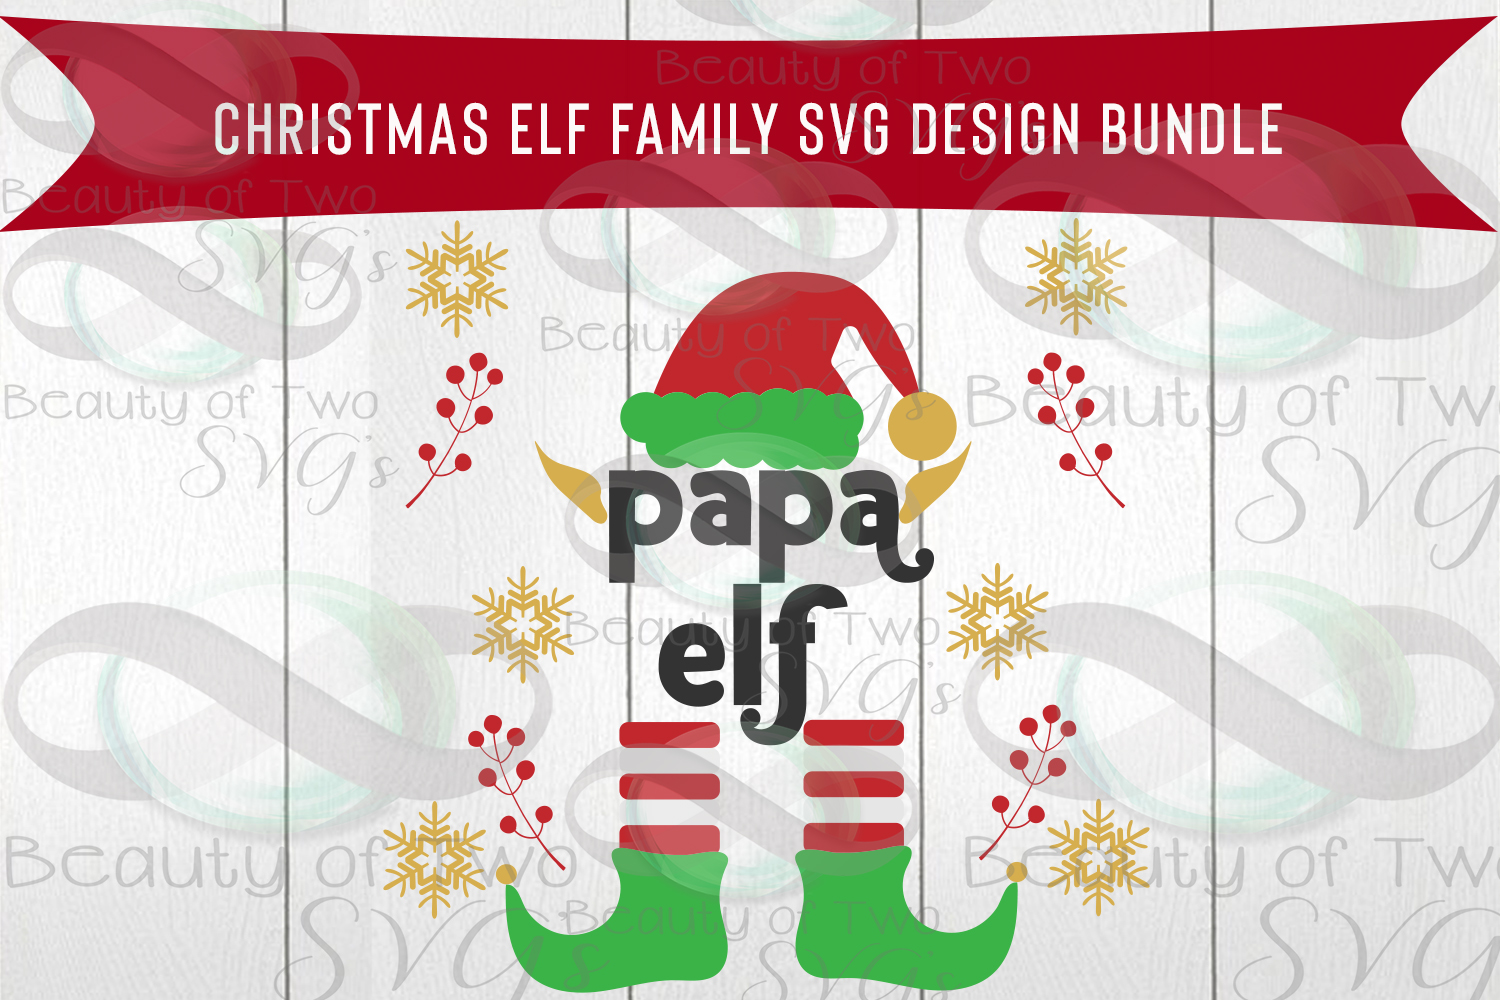 Christmas Elves Family Svg Bundle, 5 elf family svg designs example image 3